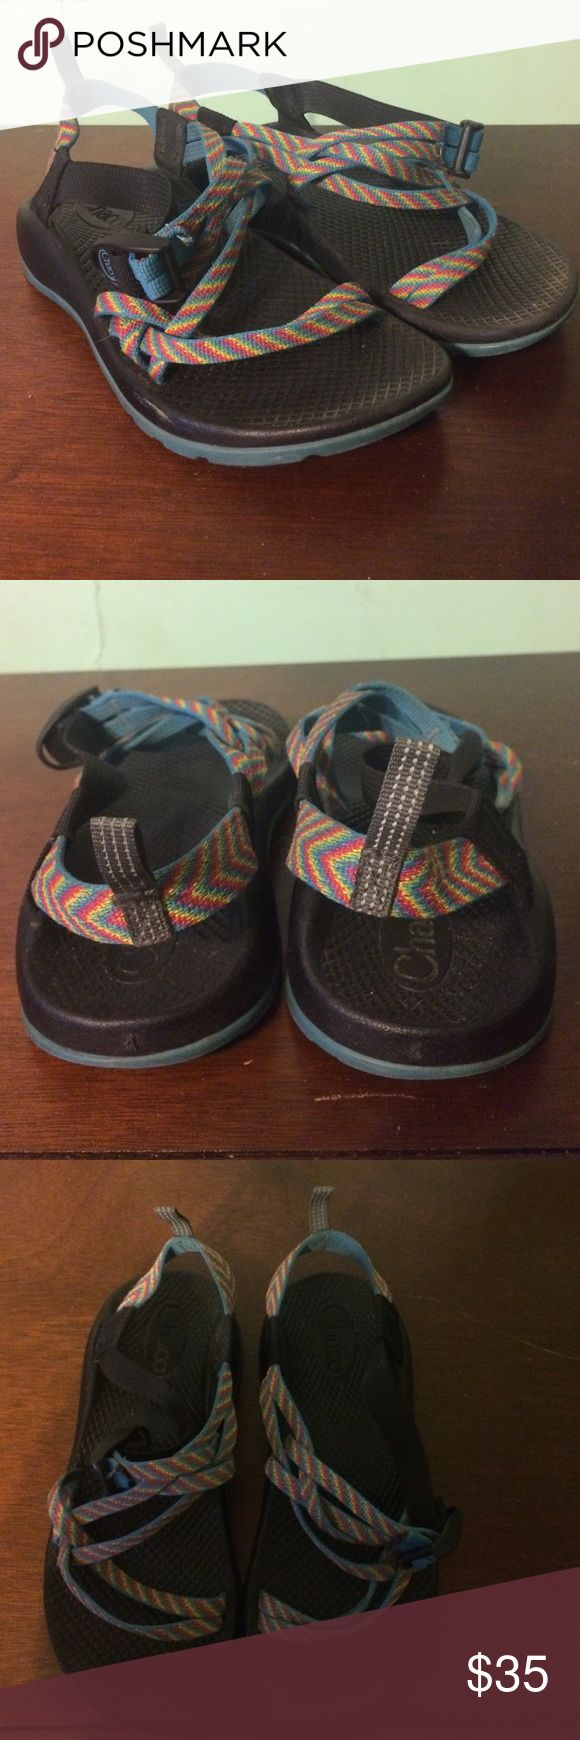 Size 4 youth / 6 in woman's Chacos rainbow colored Chaco sandals, rainbow colored and has loops at the end to easily carry anywhere. Going on vacation this winter? These are must have sandals! Enjoy! Chacos Shoes Sandals